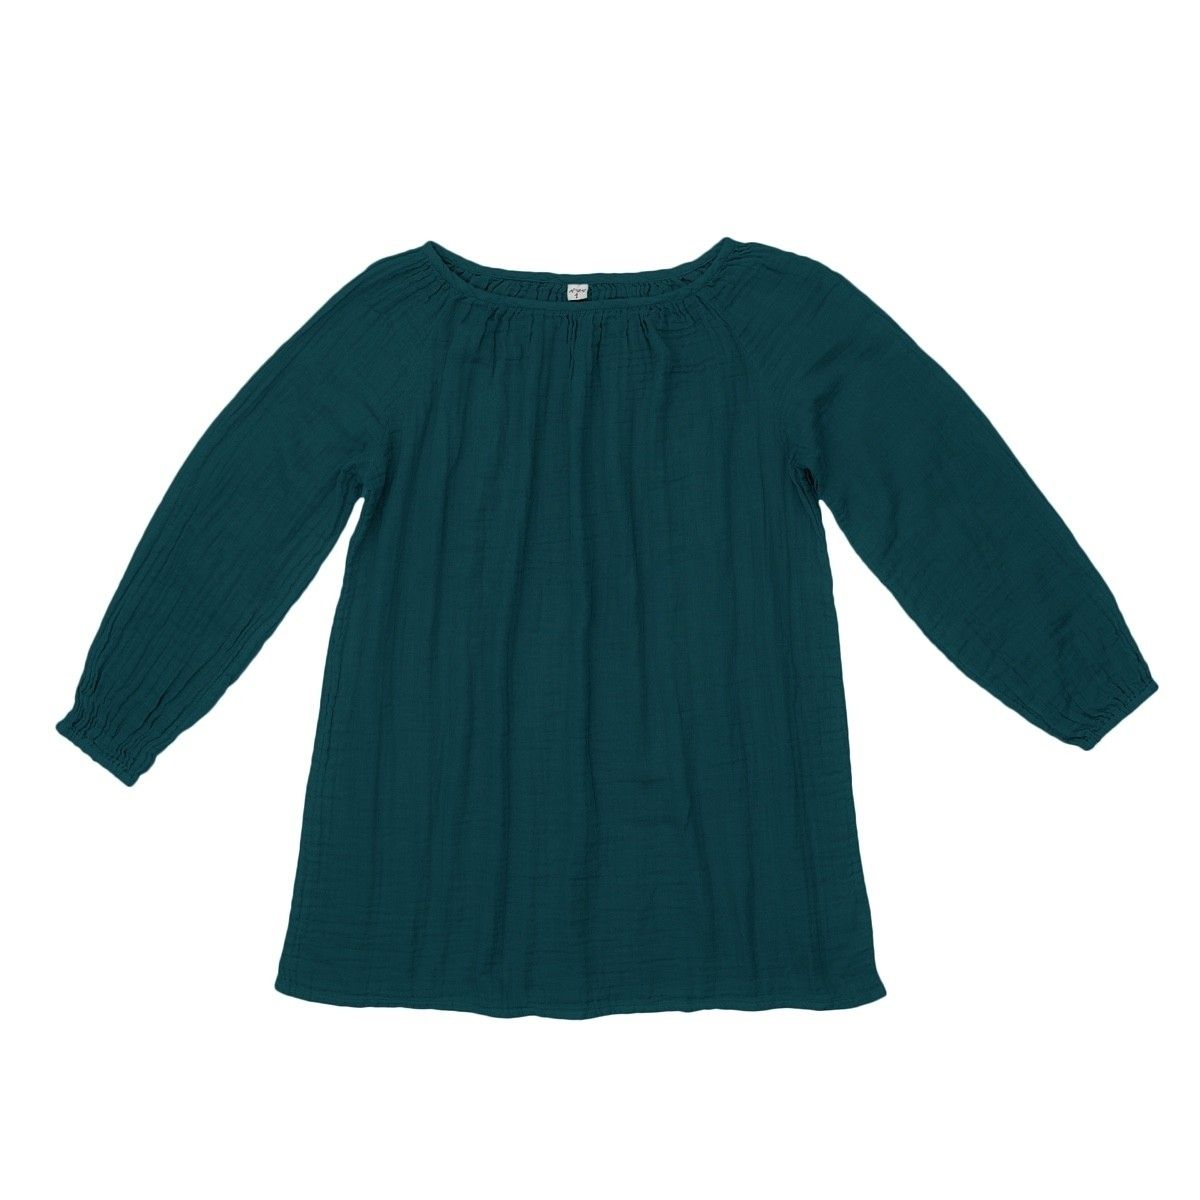 Numero 74 Tunic for mum Nina teal blue